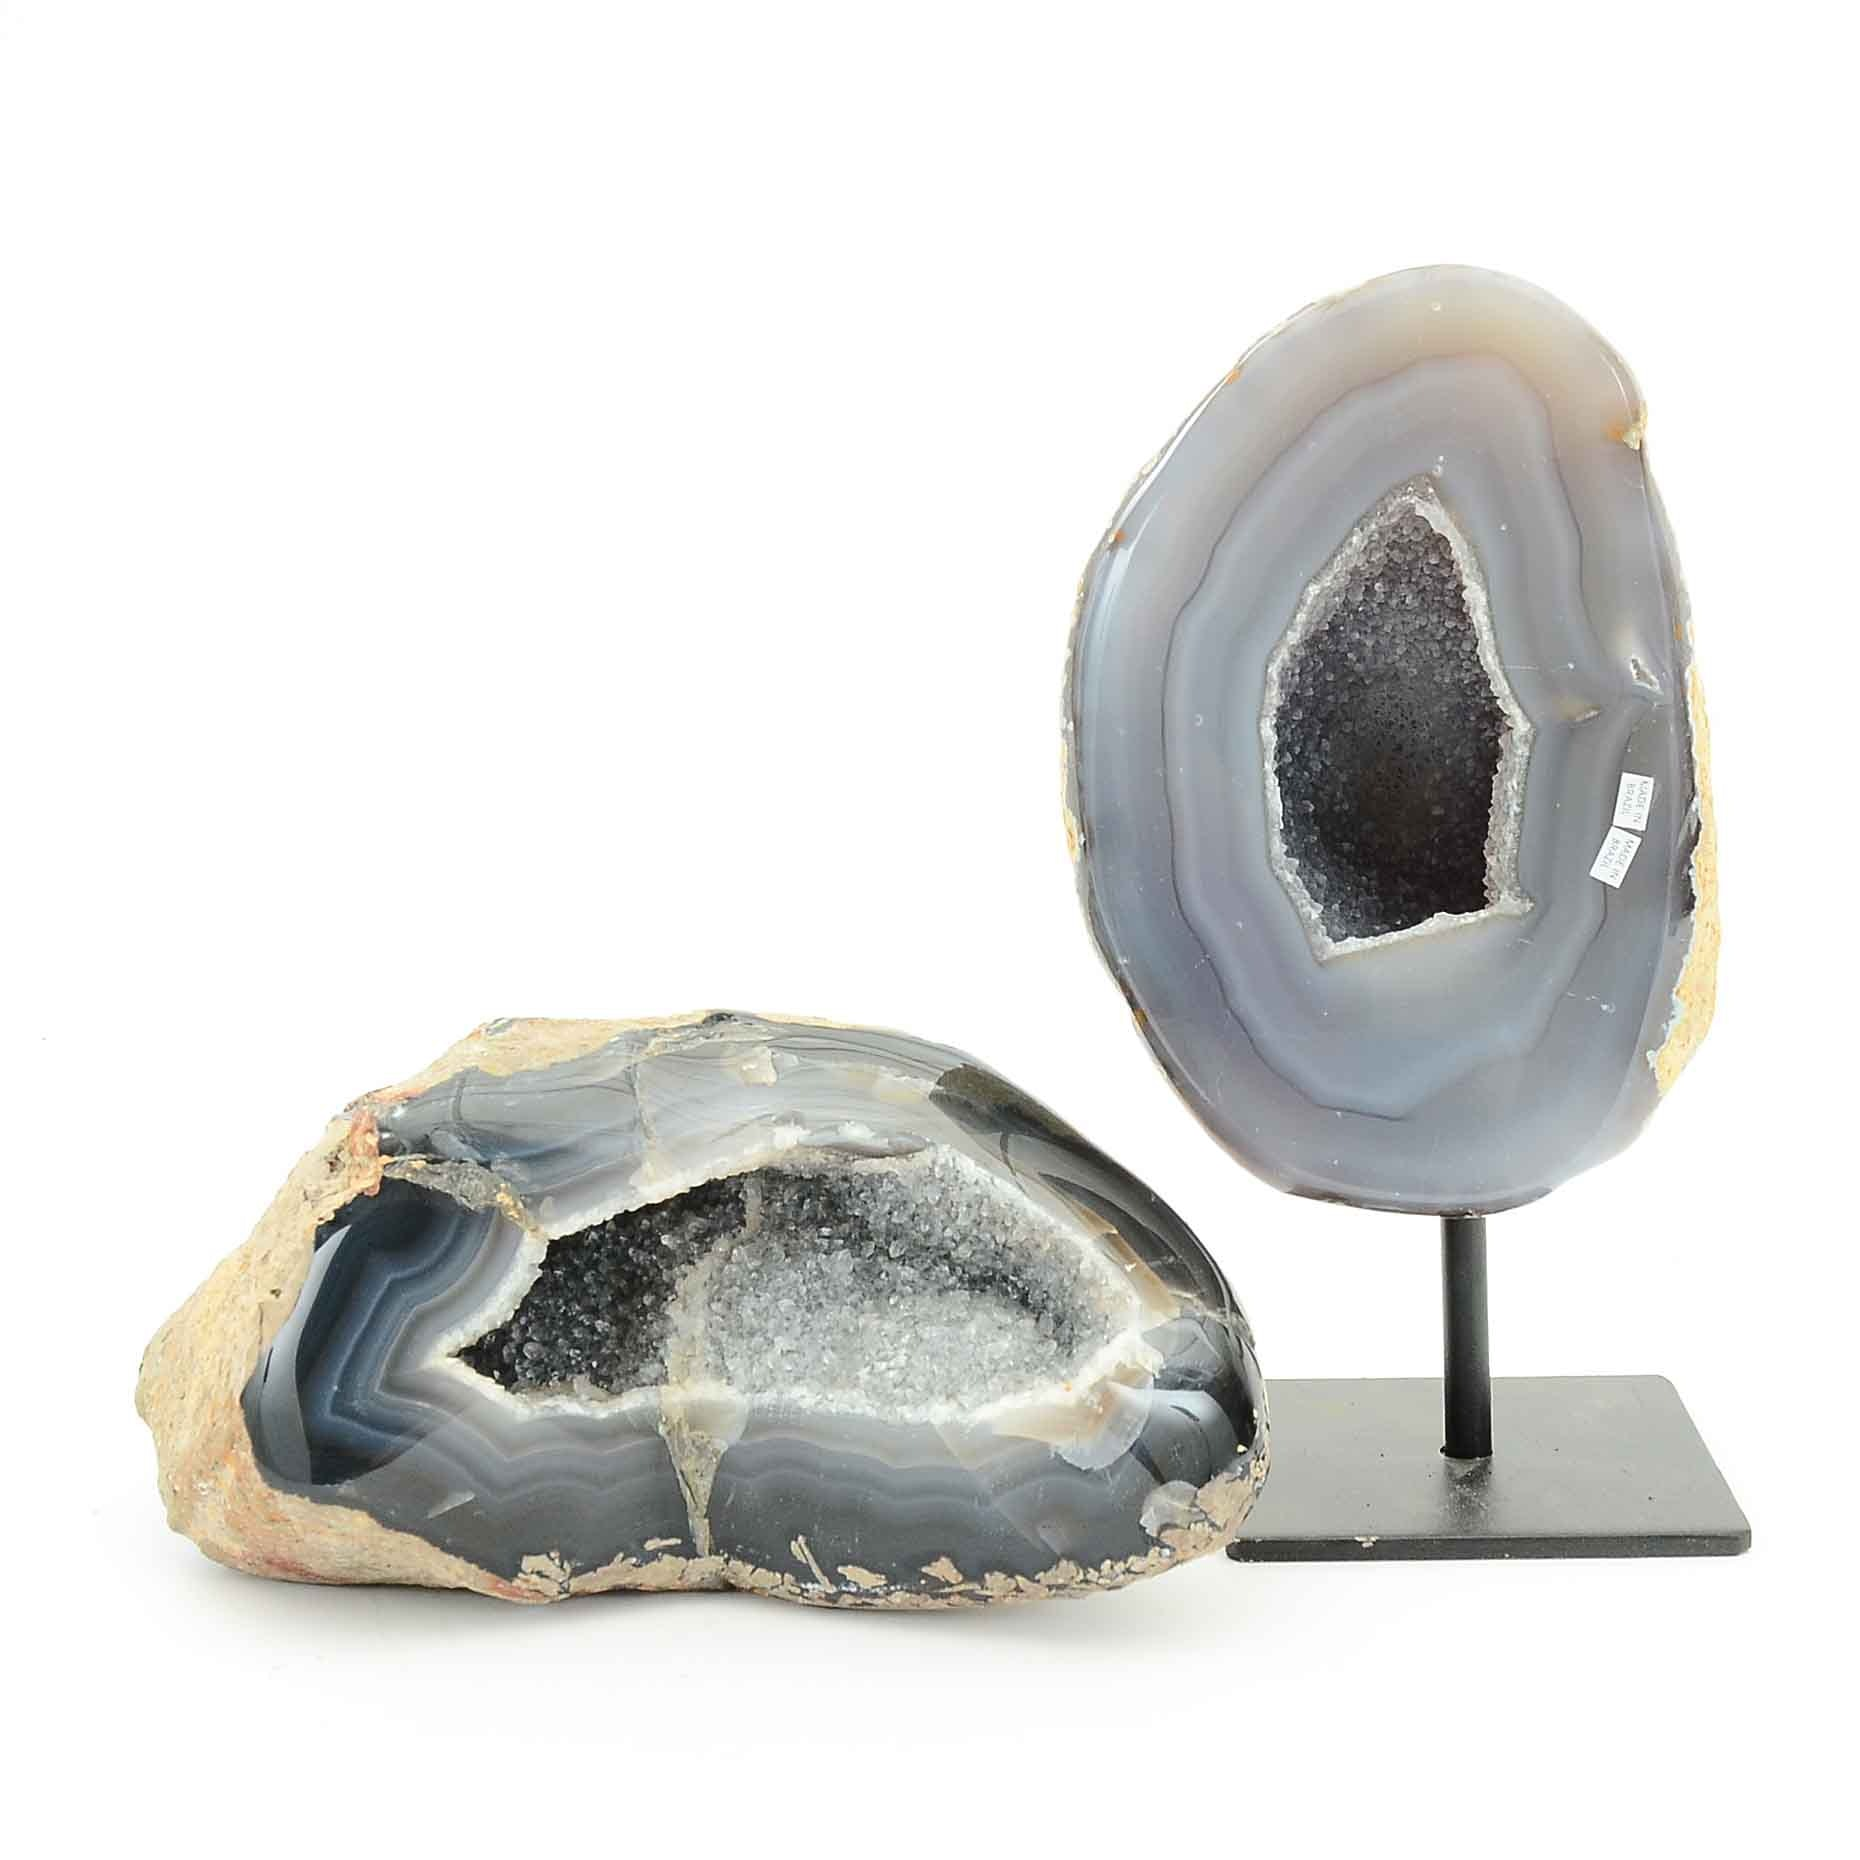 Pair of Polished Agate Geodes